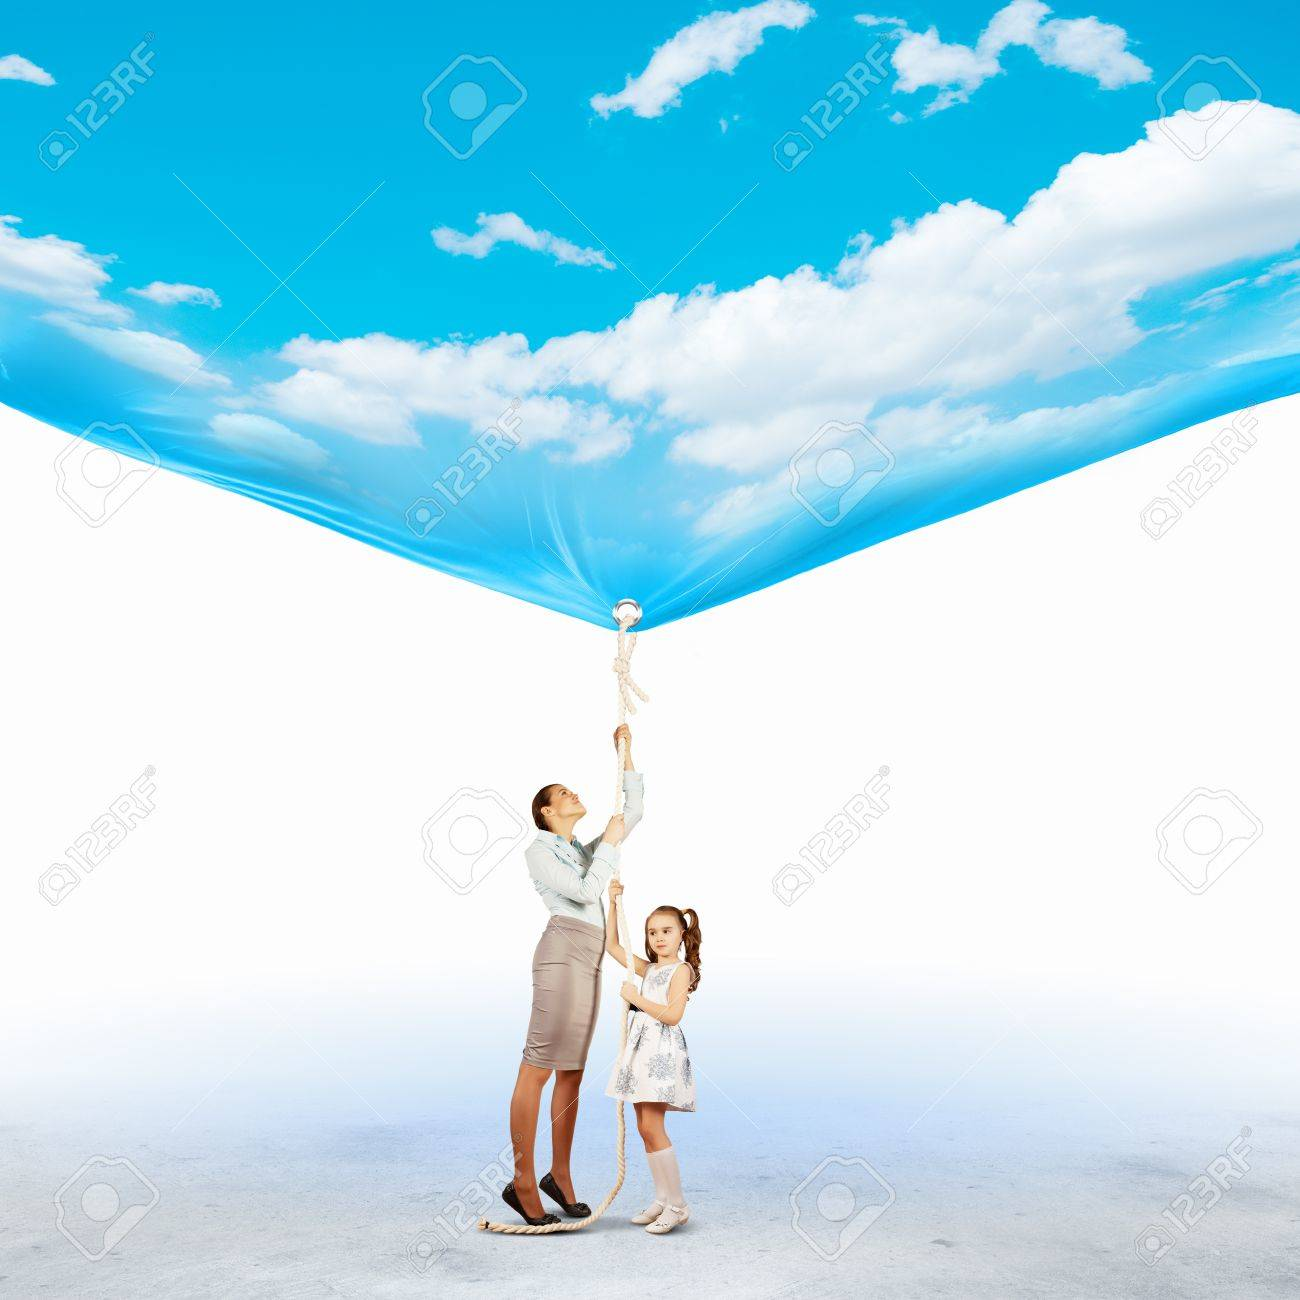 Image of young happy family pulling banner with night illustration Stock Photo - 20085994